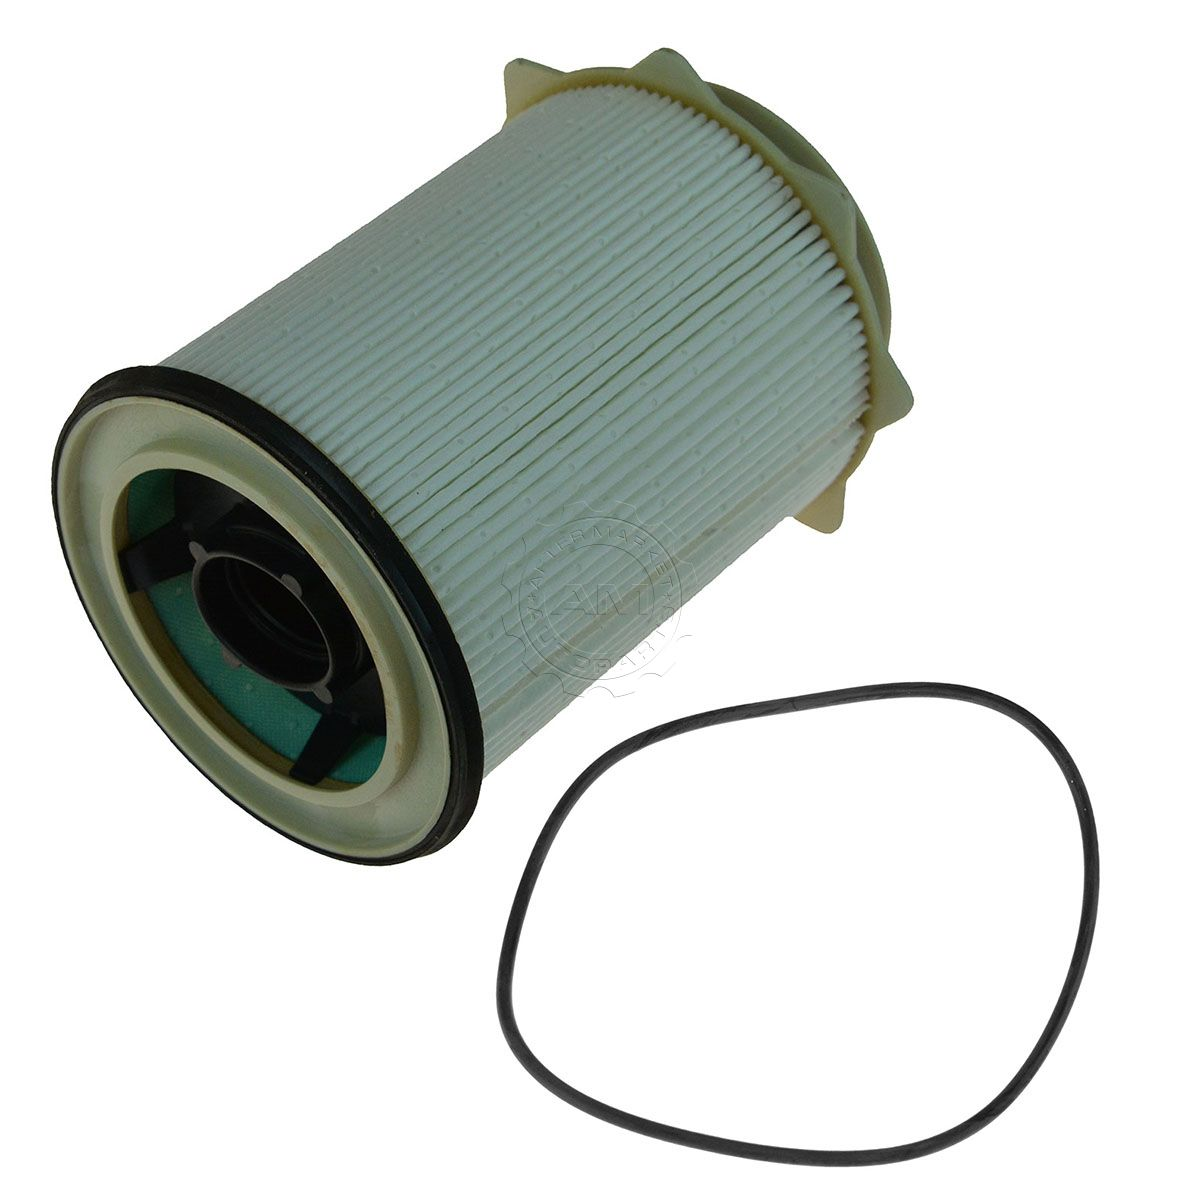 hight resolution of mopar oem diesel fuel filter for dodge ram 2500 3500 4500 5500 truck